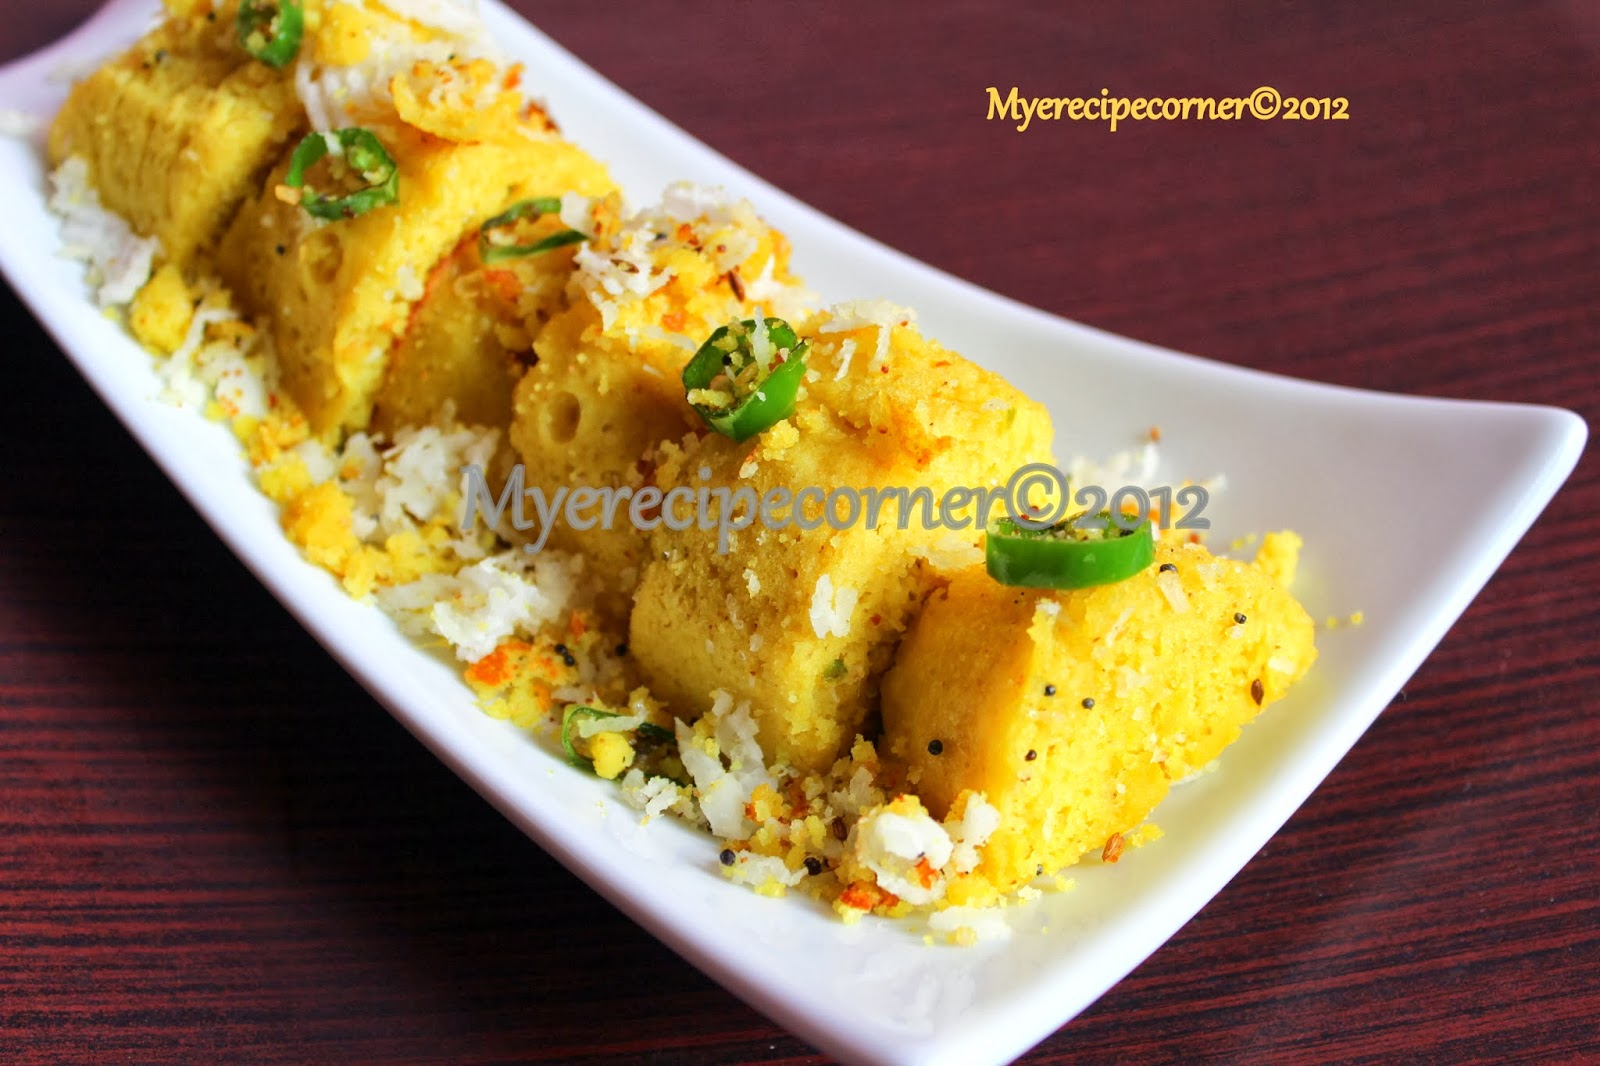 Myes kitchen khaman dhokla recipe a tribute to tarla dalal khaman dhokla recipe a tribute to tarla dalal forumfinder Image collections